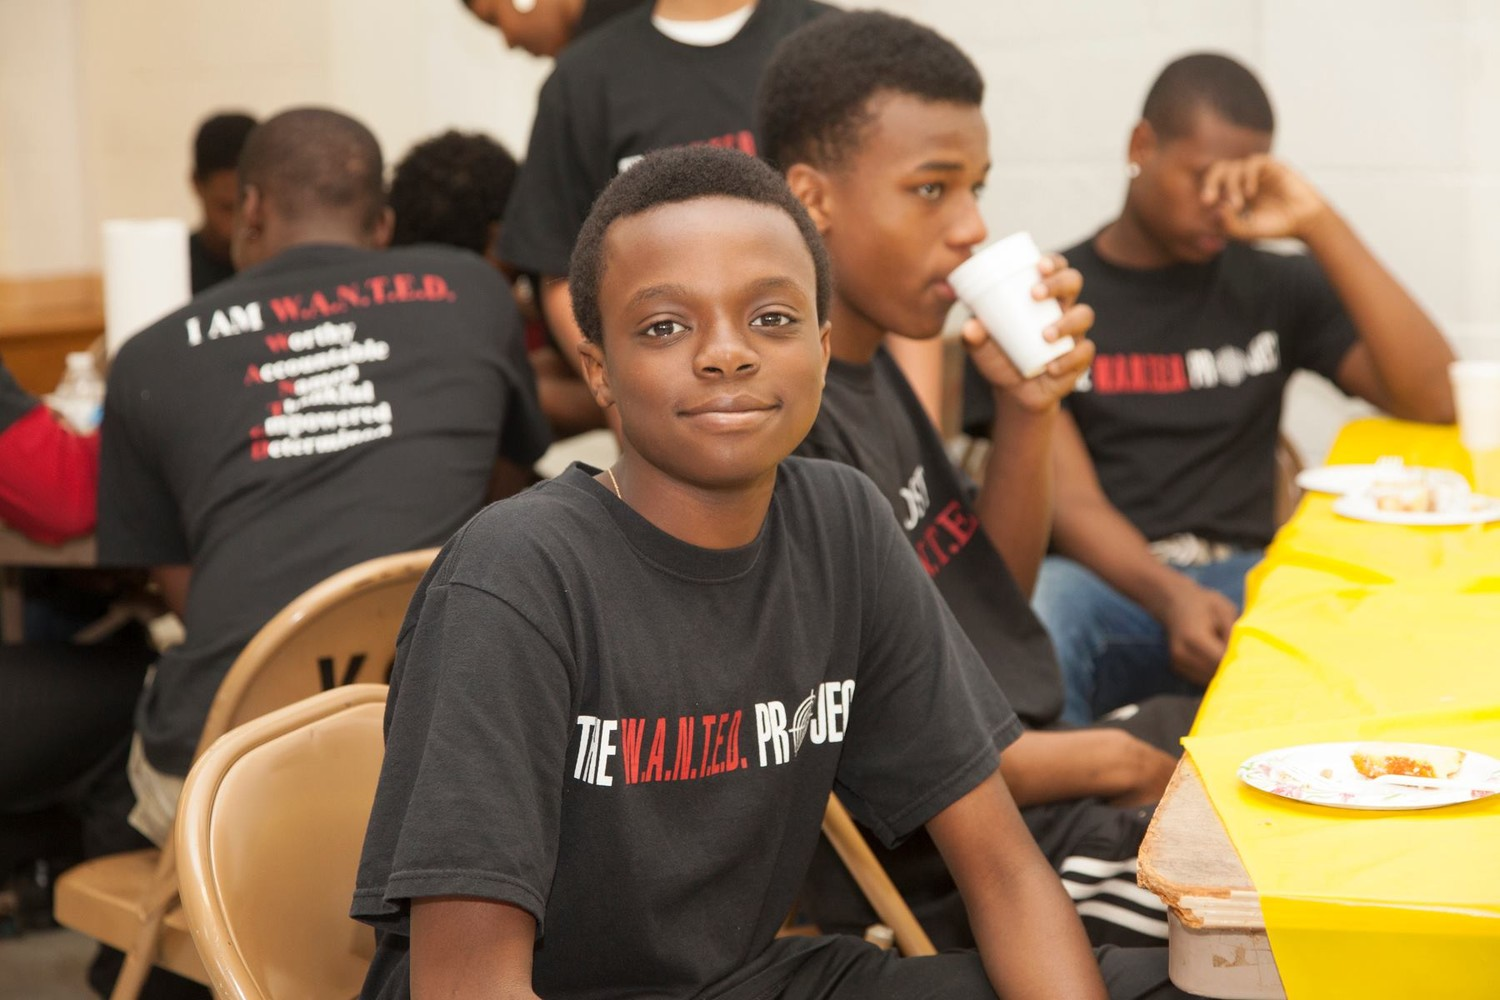 Elijah Johnson, pictured here in 2014, has participated in the W.A.N.T.E.D. Project for the past five years.